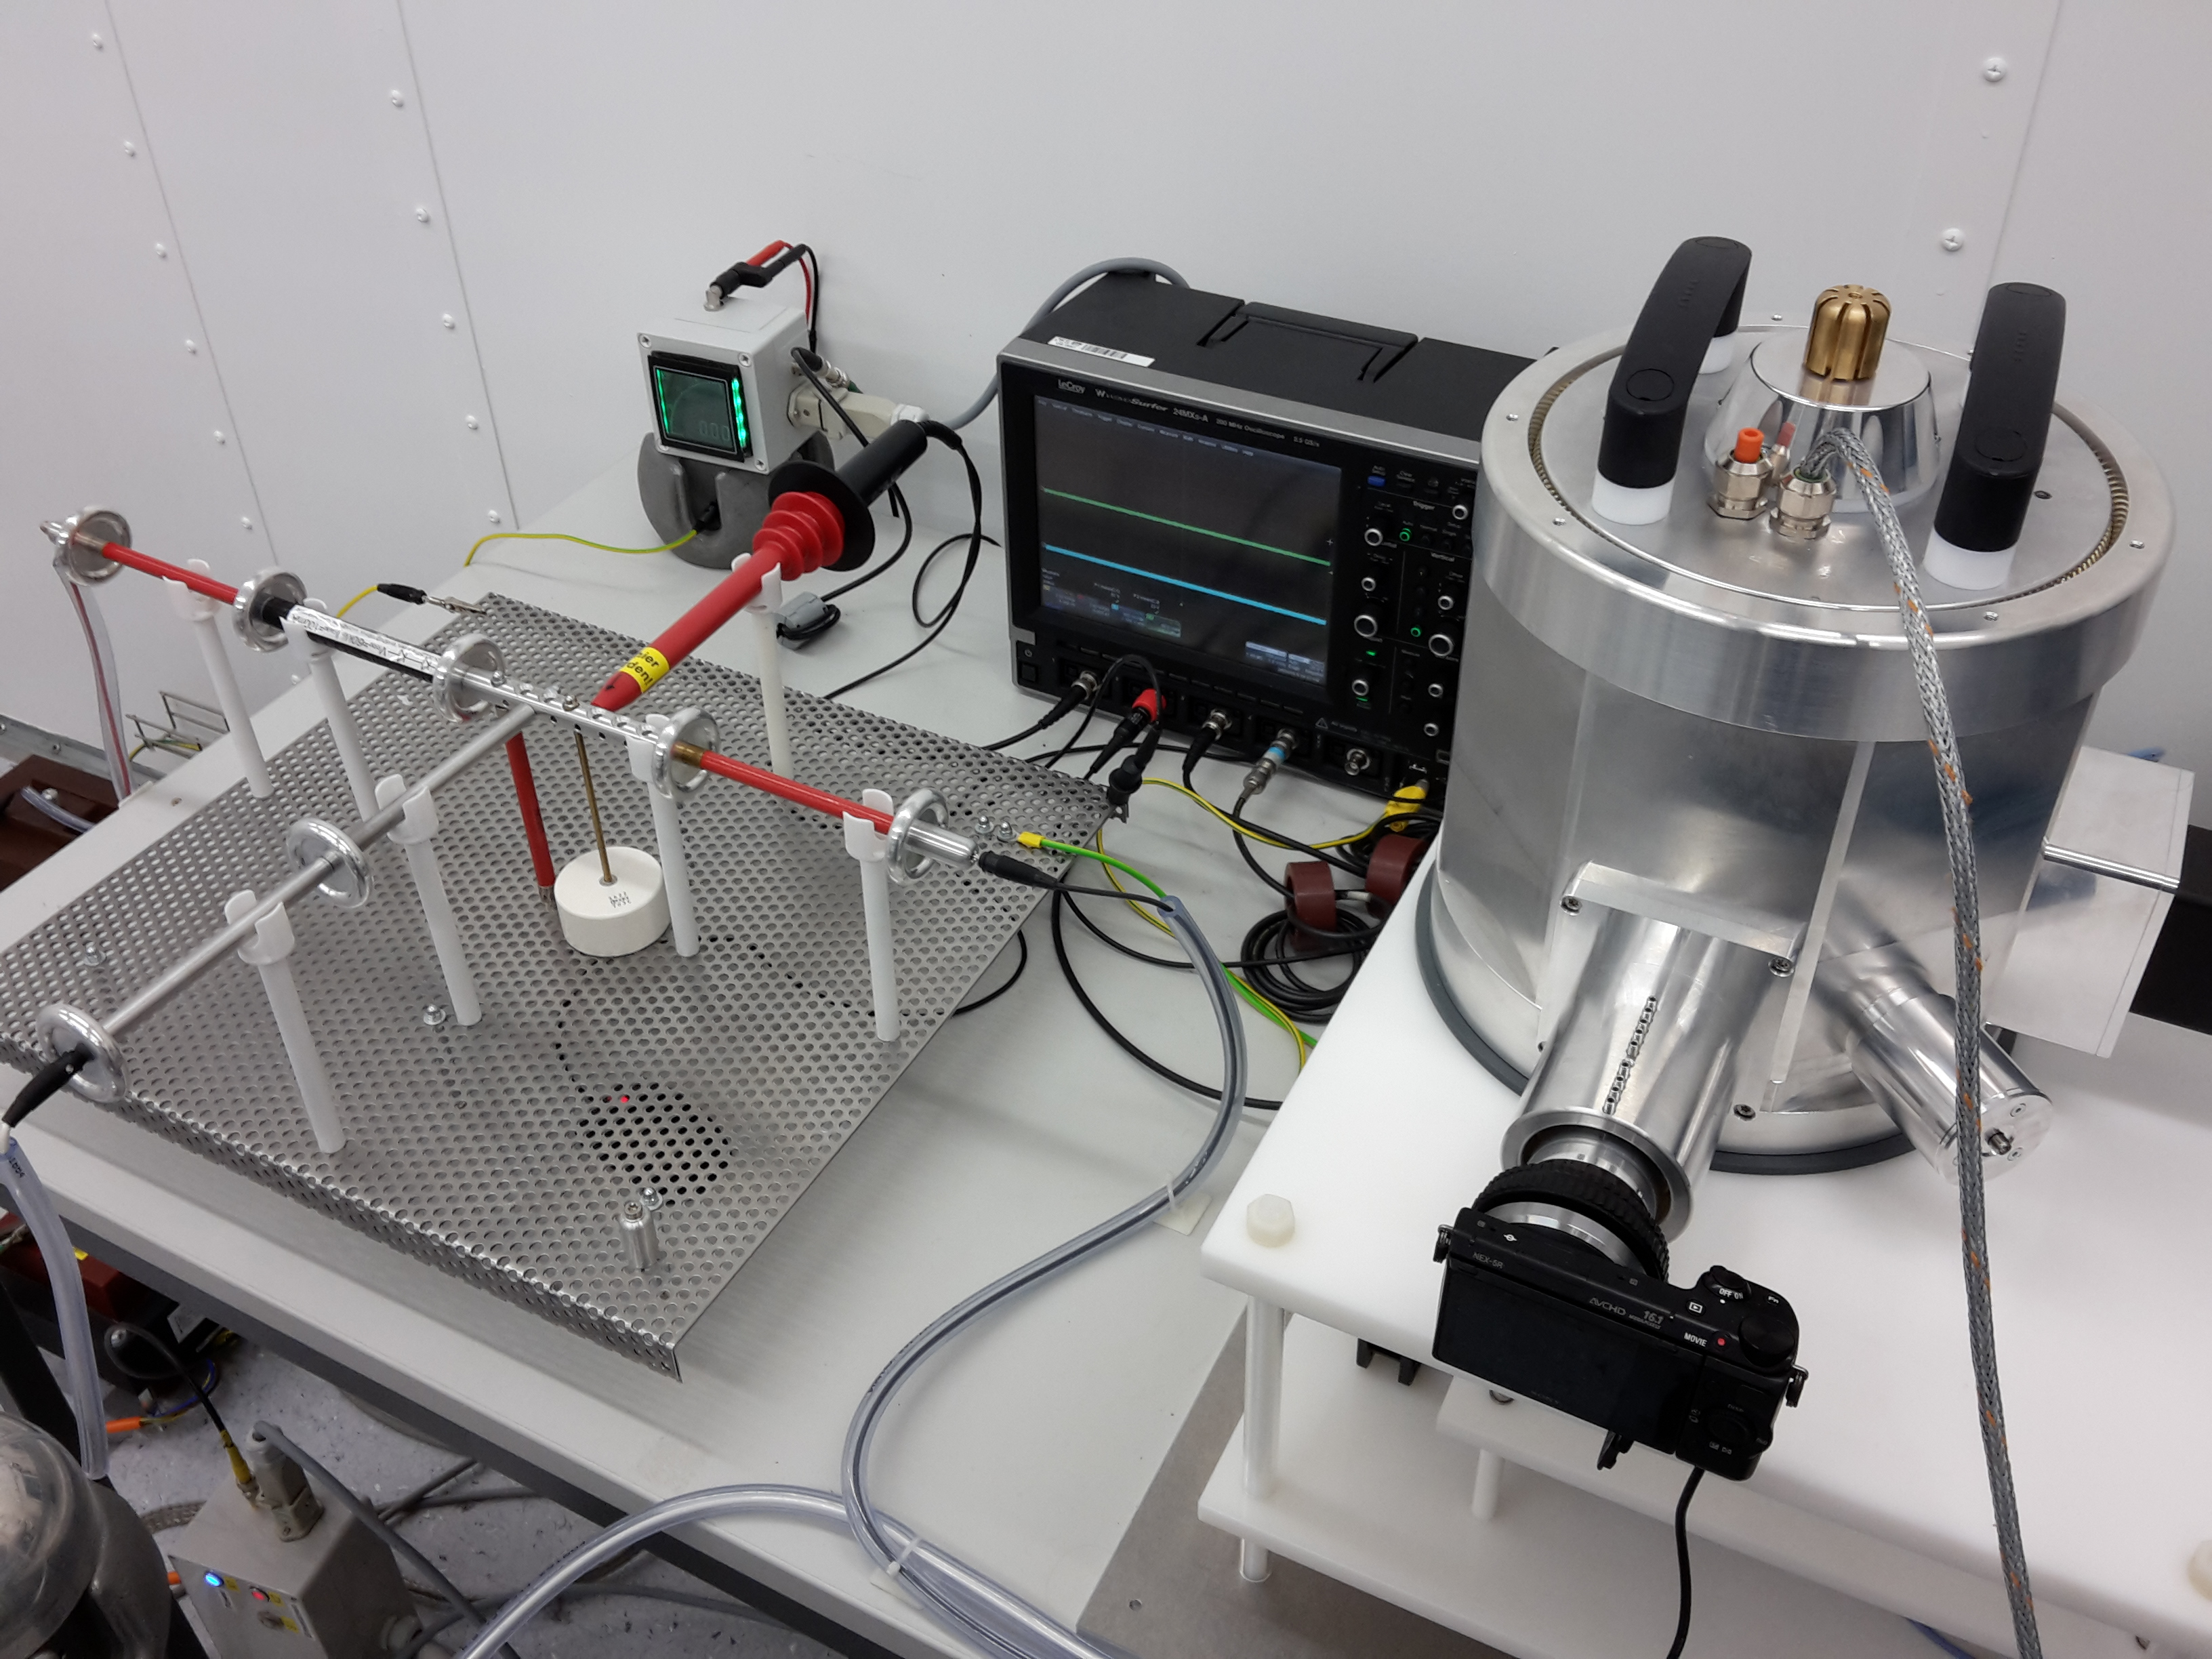 Electrical Insulation Challenges In Future Smart Grids Power Drytype Transformer Testing Open Test Bench Developed To Study The Influence Of Medium Voltage Converter Stresses On Durability Materials